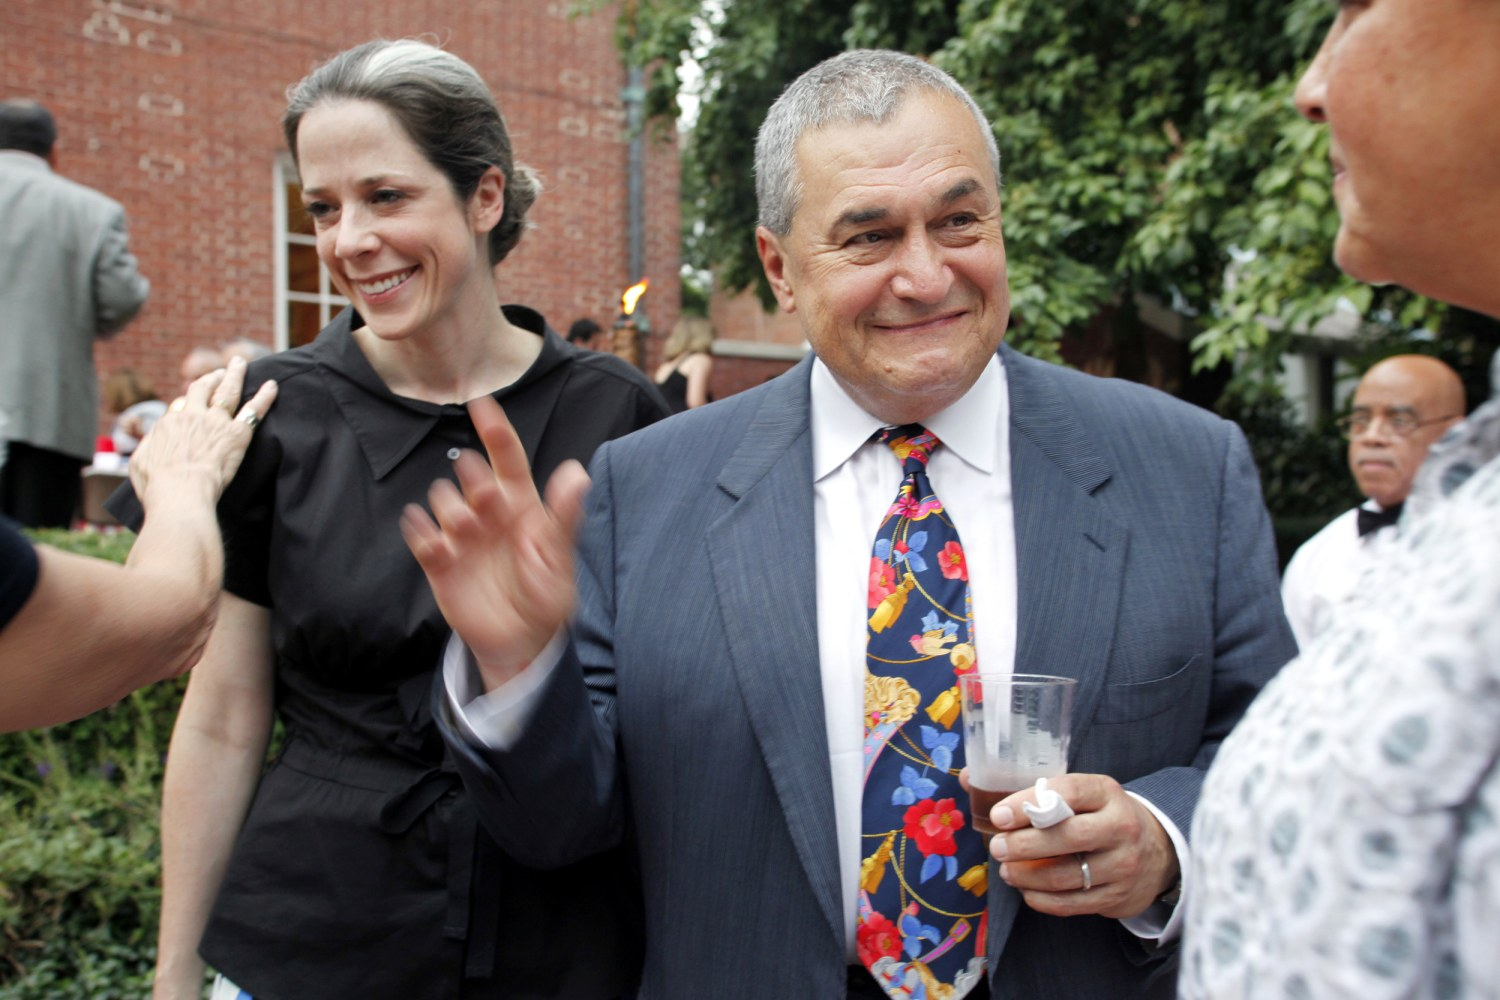 Democratic Lobbyist Tony Podesta Steps Down Amid Mueller Probe